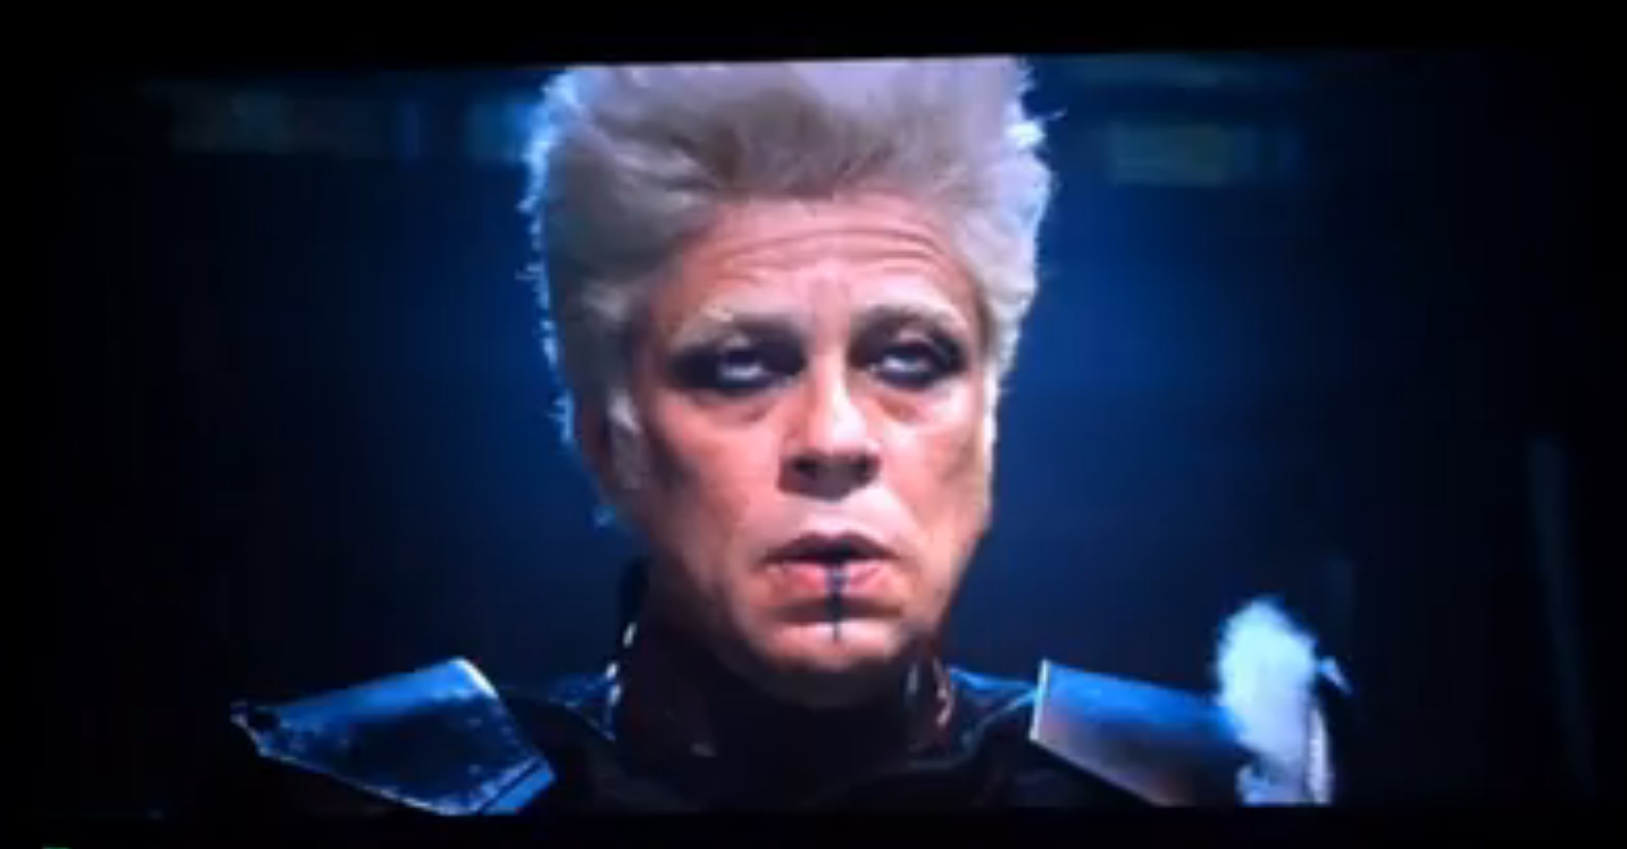 Benicio Del Toro As The Collector 1 Geek Prime